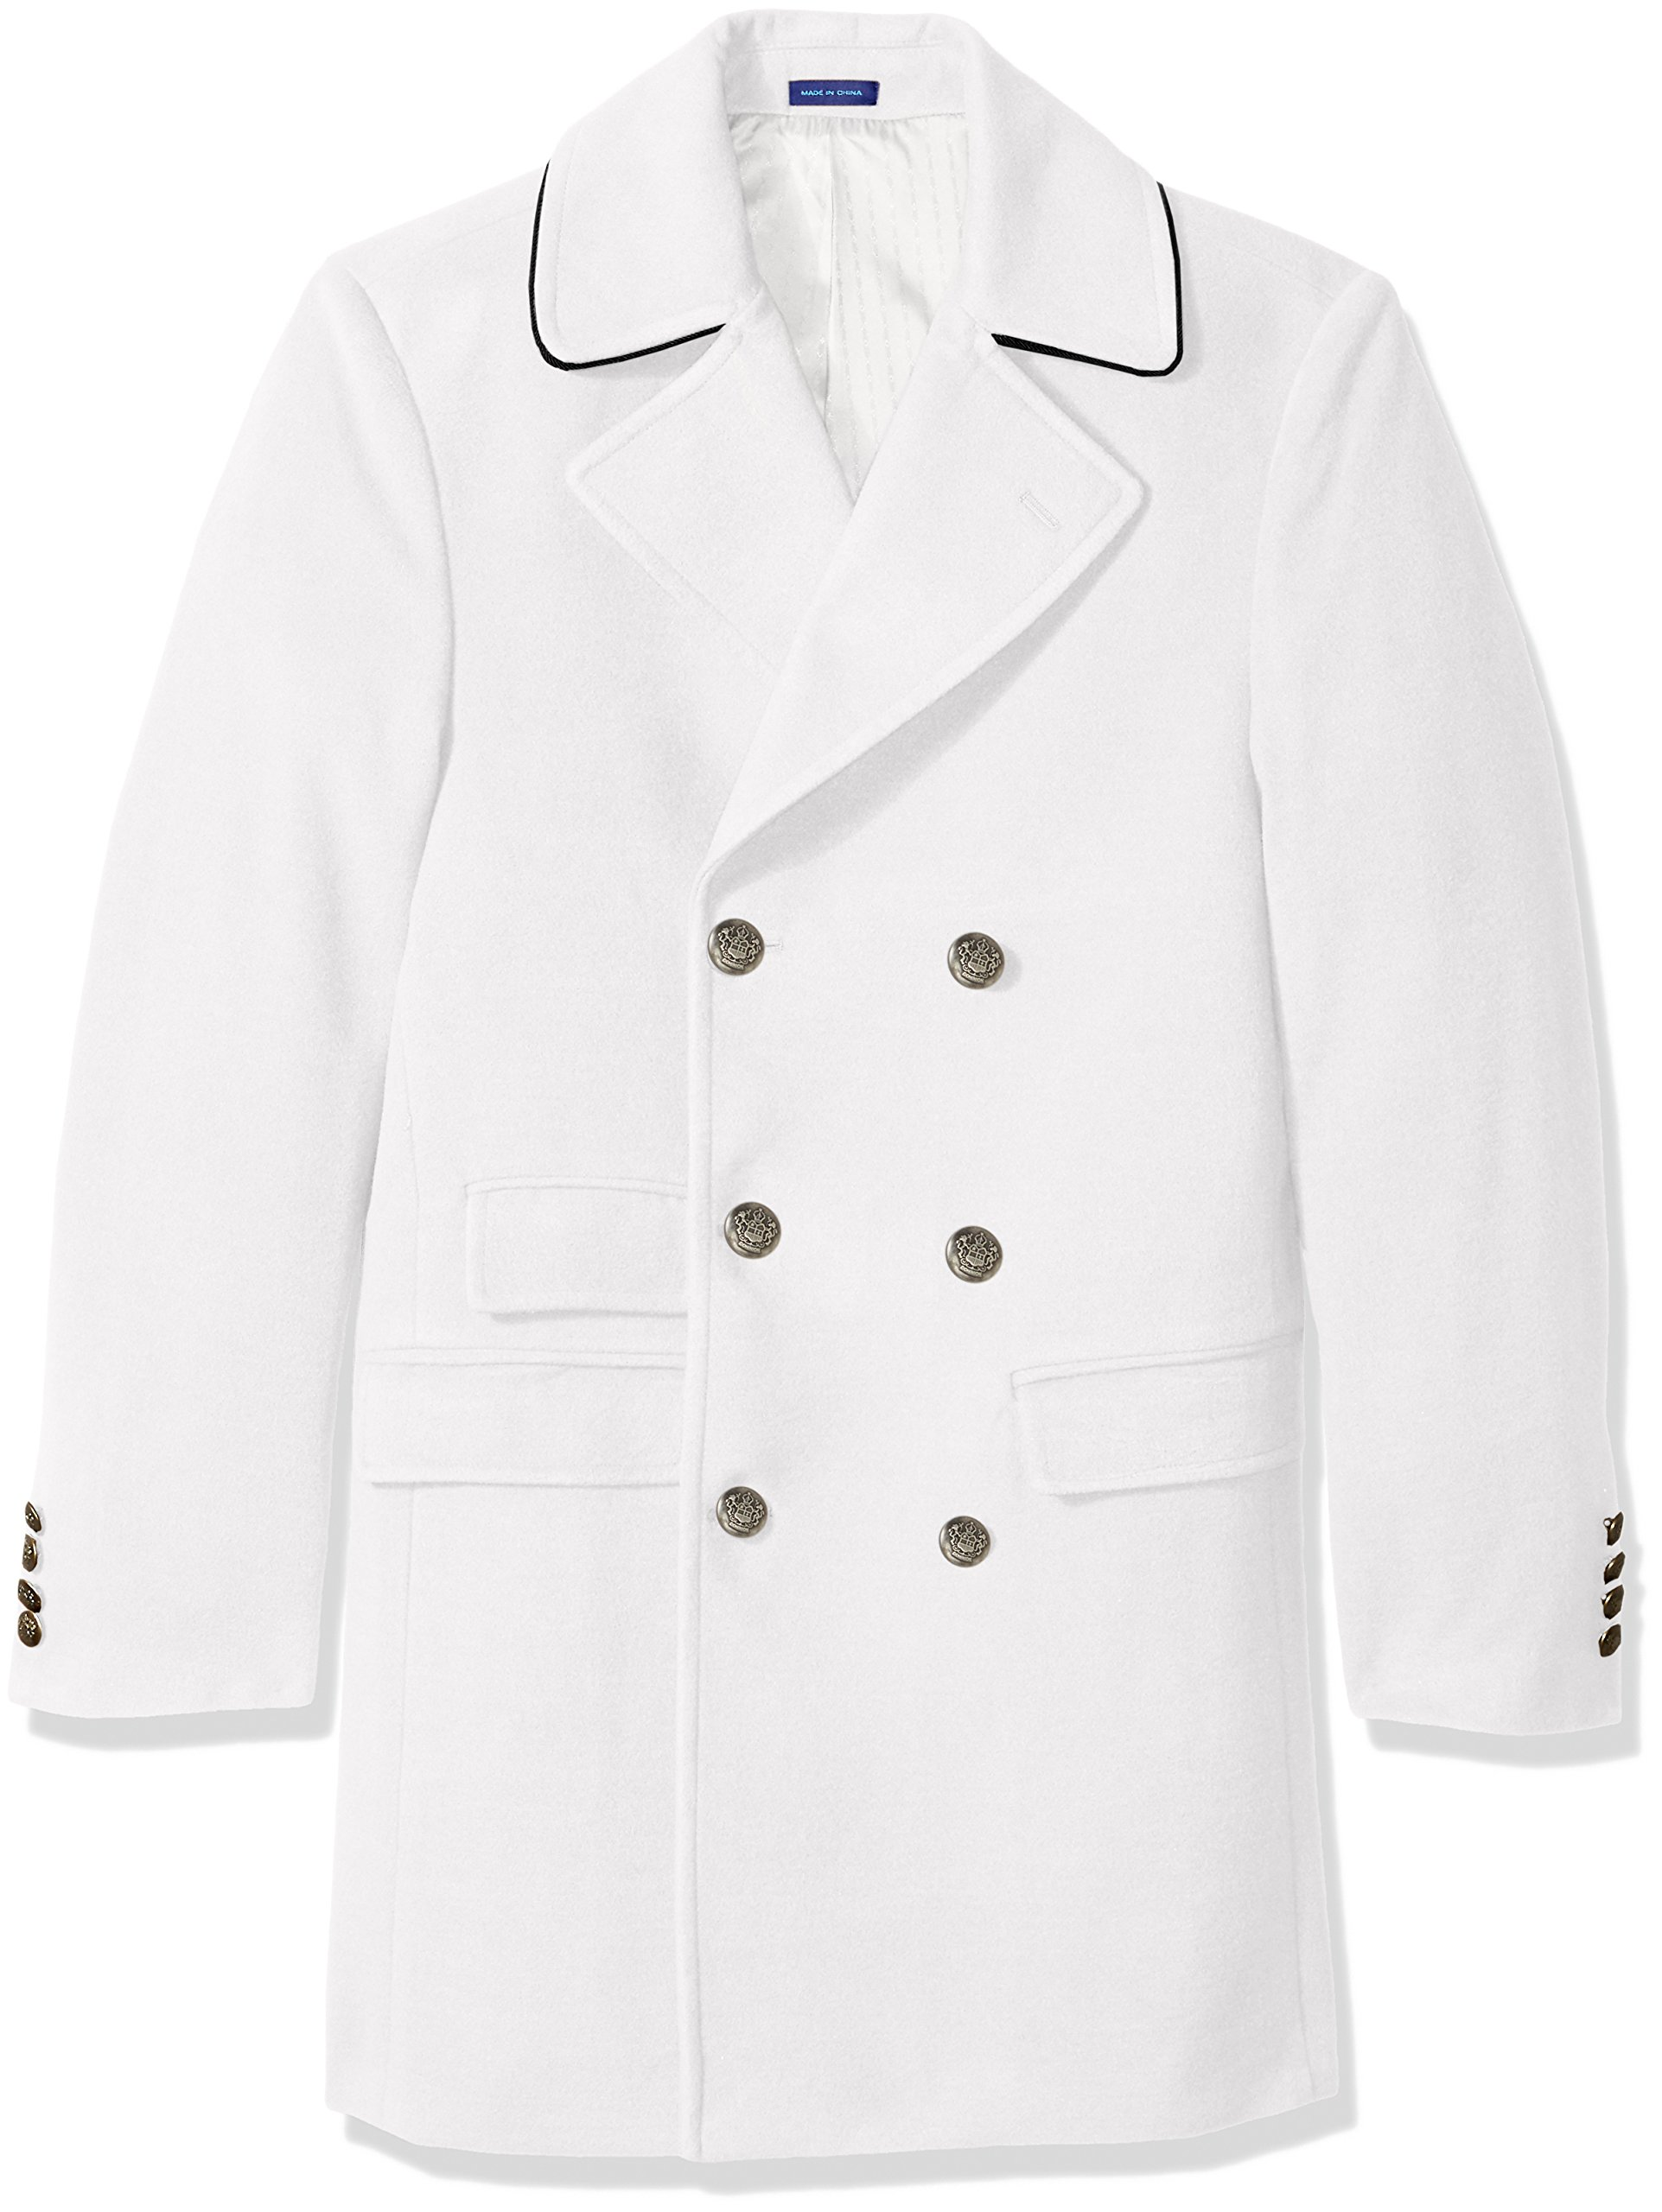 Stacy Adams Men's Big and Tall tomy Double Breasted 36 Inch Topcoat, Winter White, 52